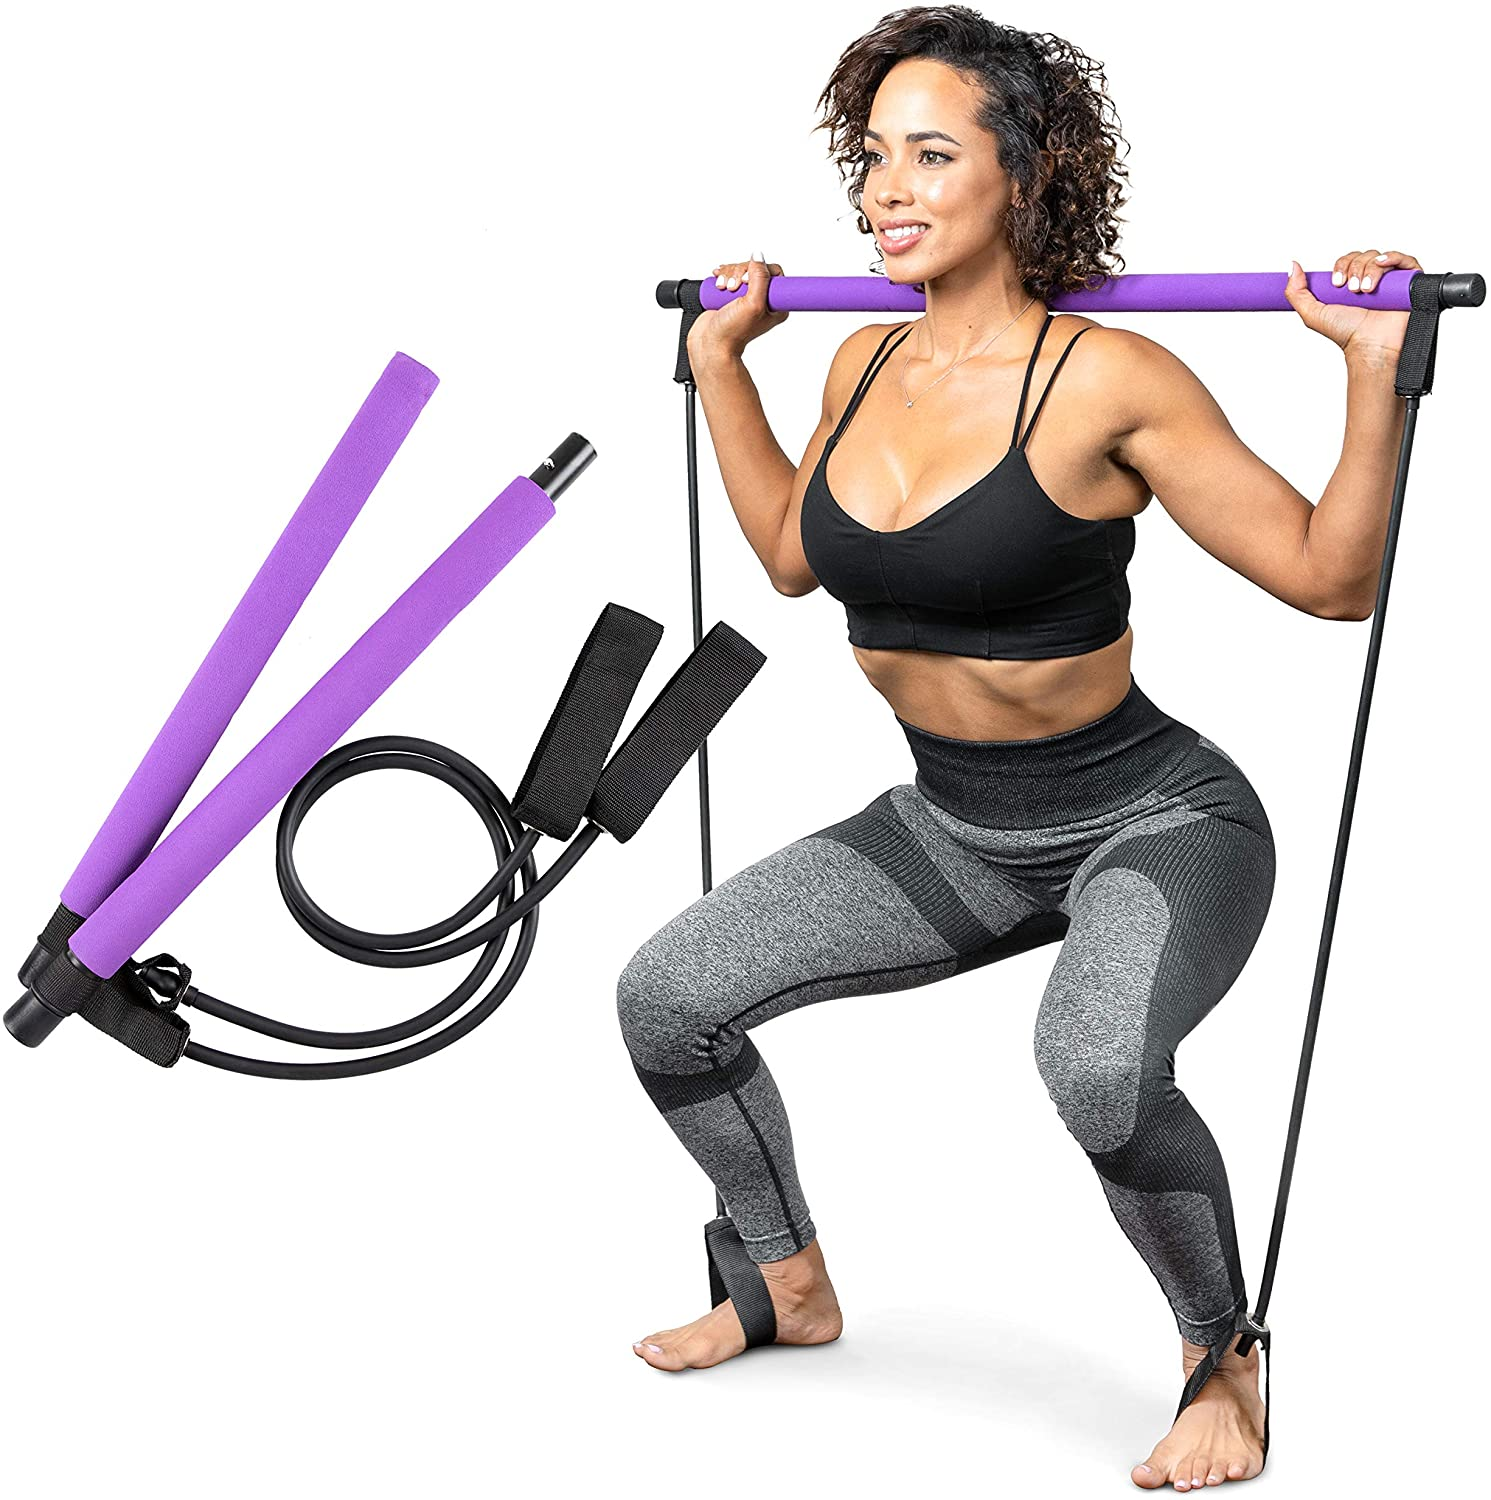 Home Fitness Workout Equipment for Women Pilates Bar Kit with Resistance Bands Exercise Stick